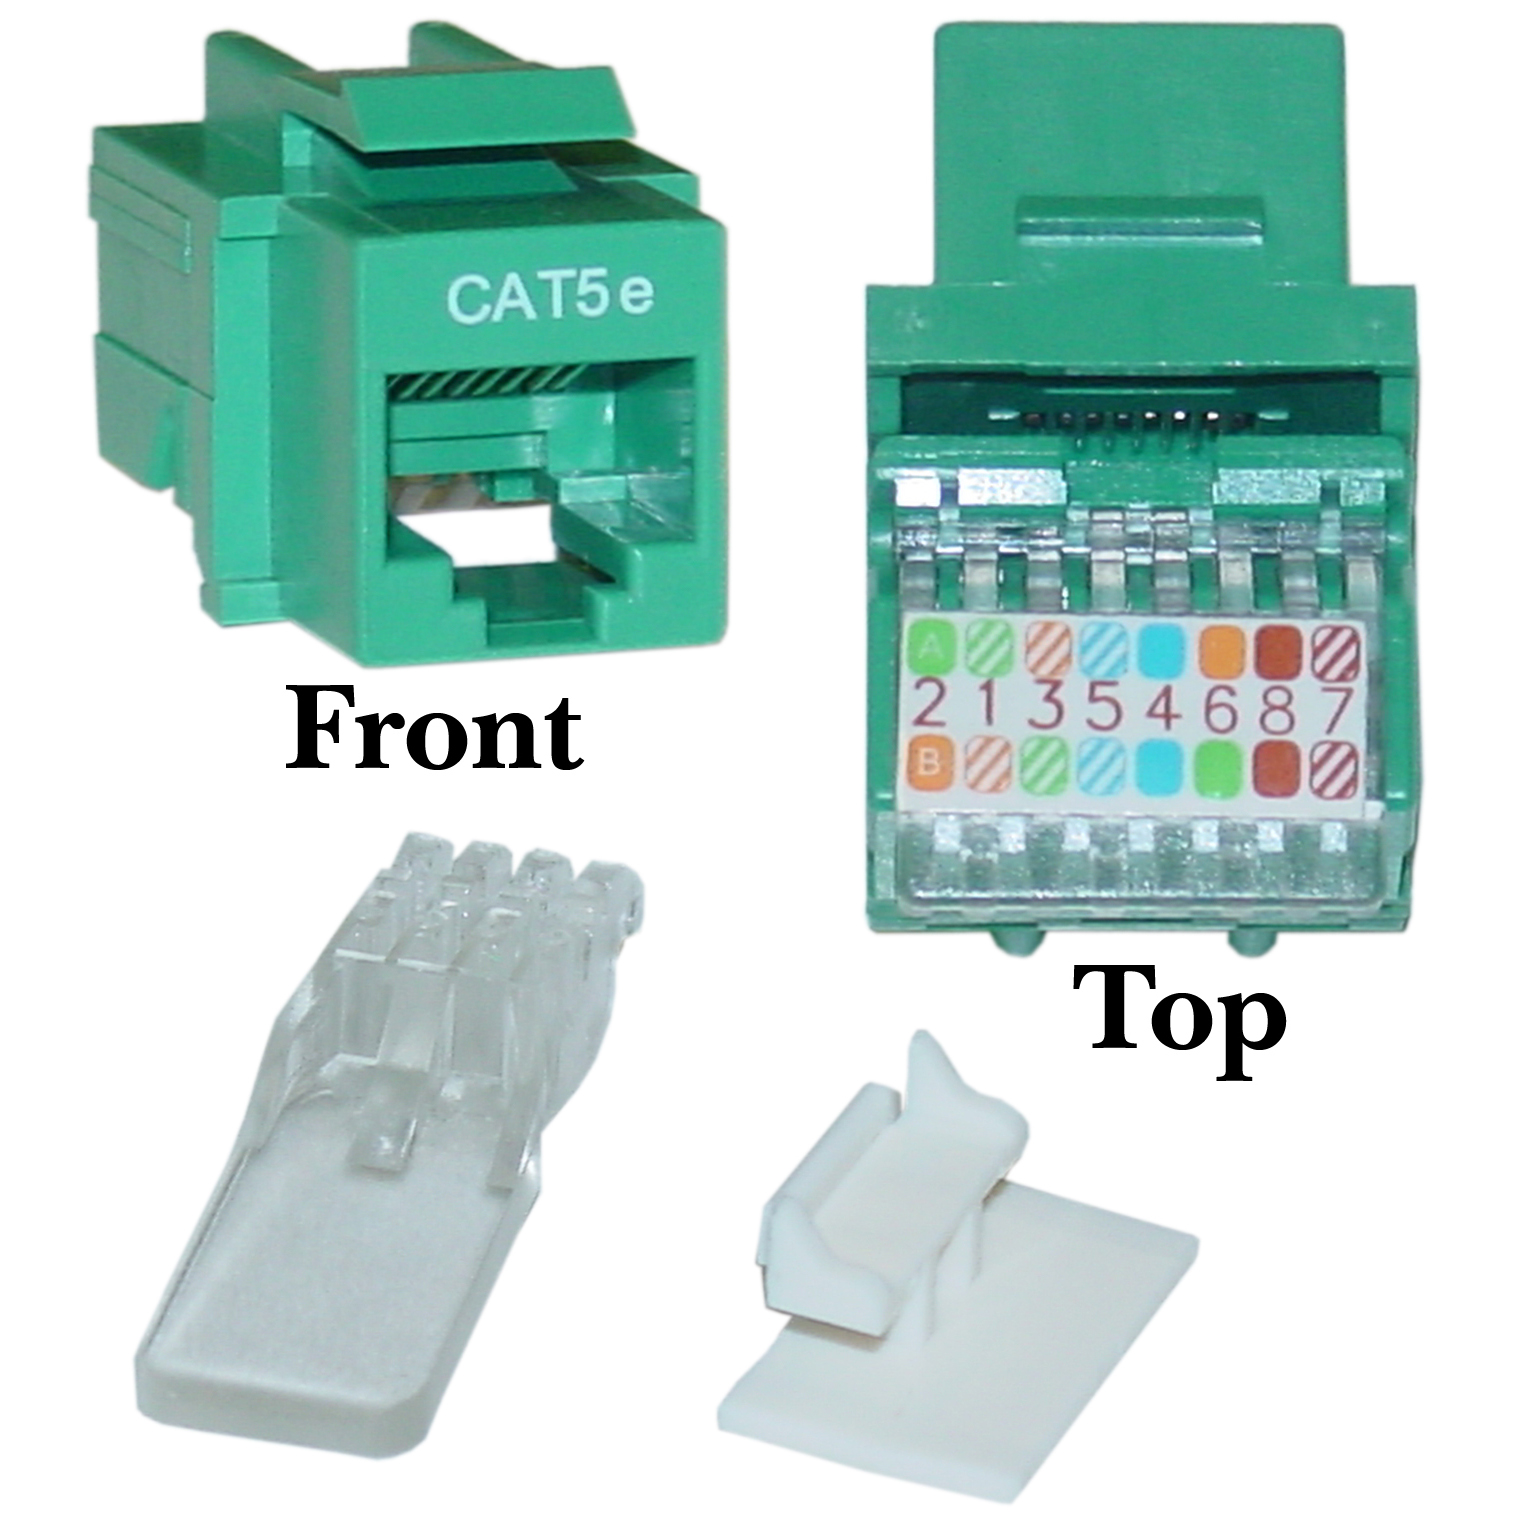 Green Cat5e Rj45 Keystone Jack Toolless Connector Cat 6 Modular Plug Female Part Number 311